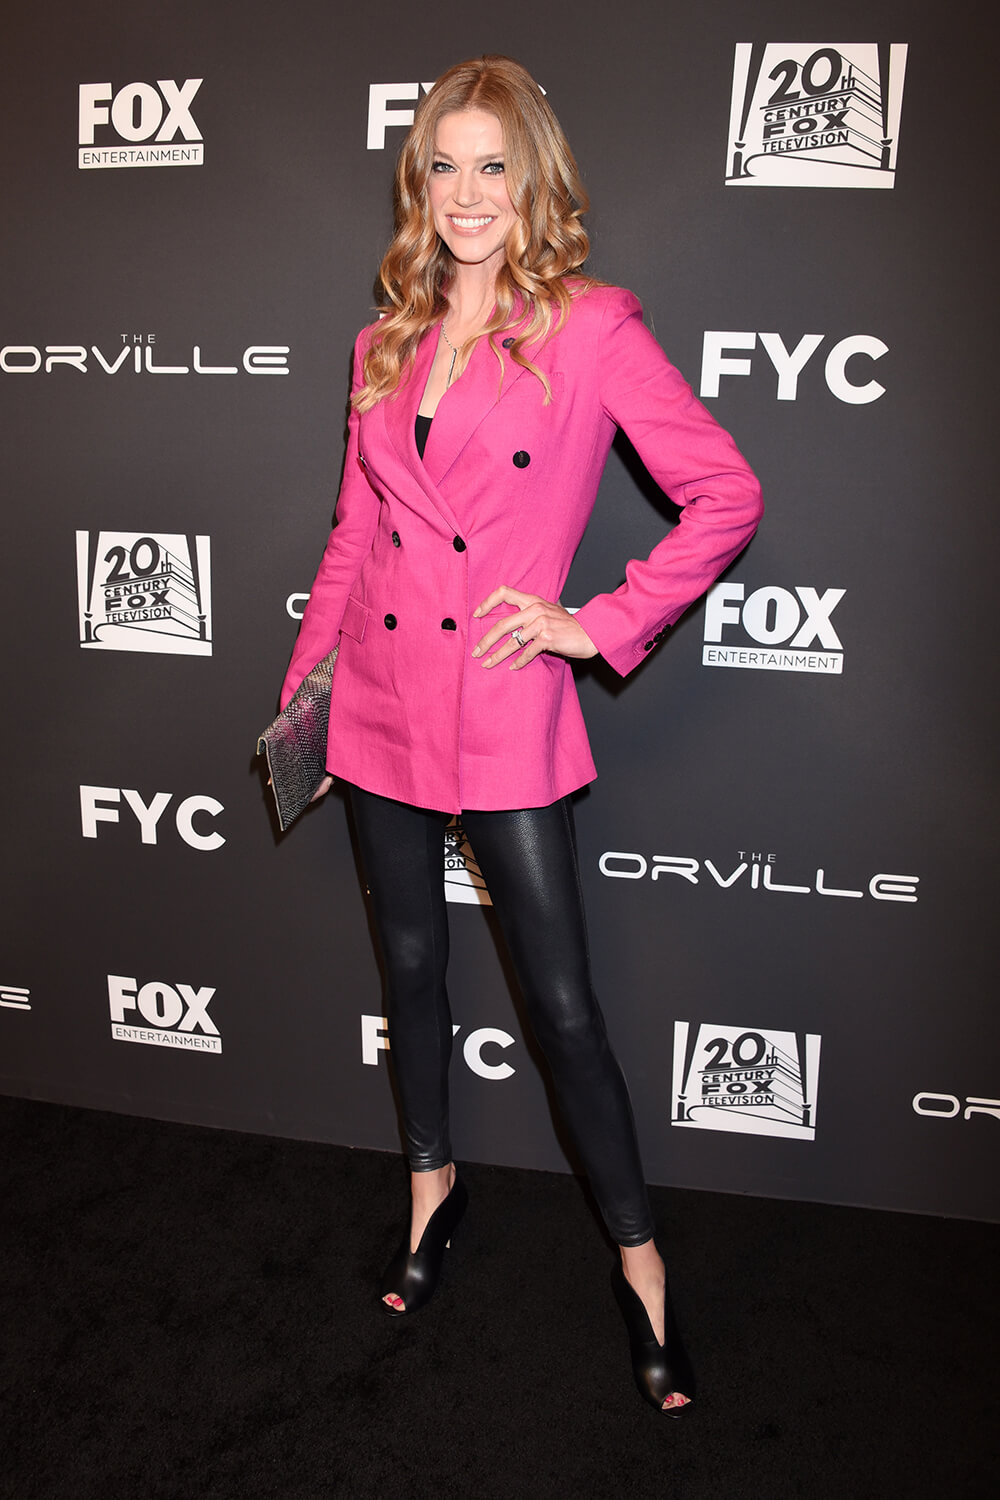 Adrianne Palicki attends The Orville TV Show photocall, Los Angeles 24.04.2019